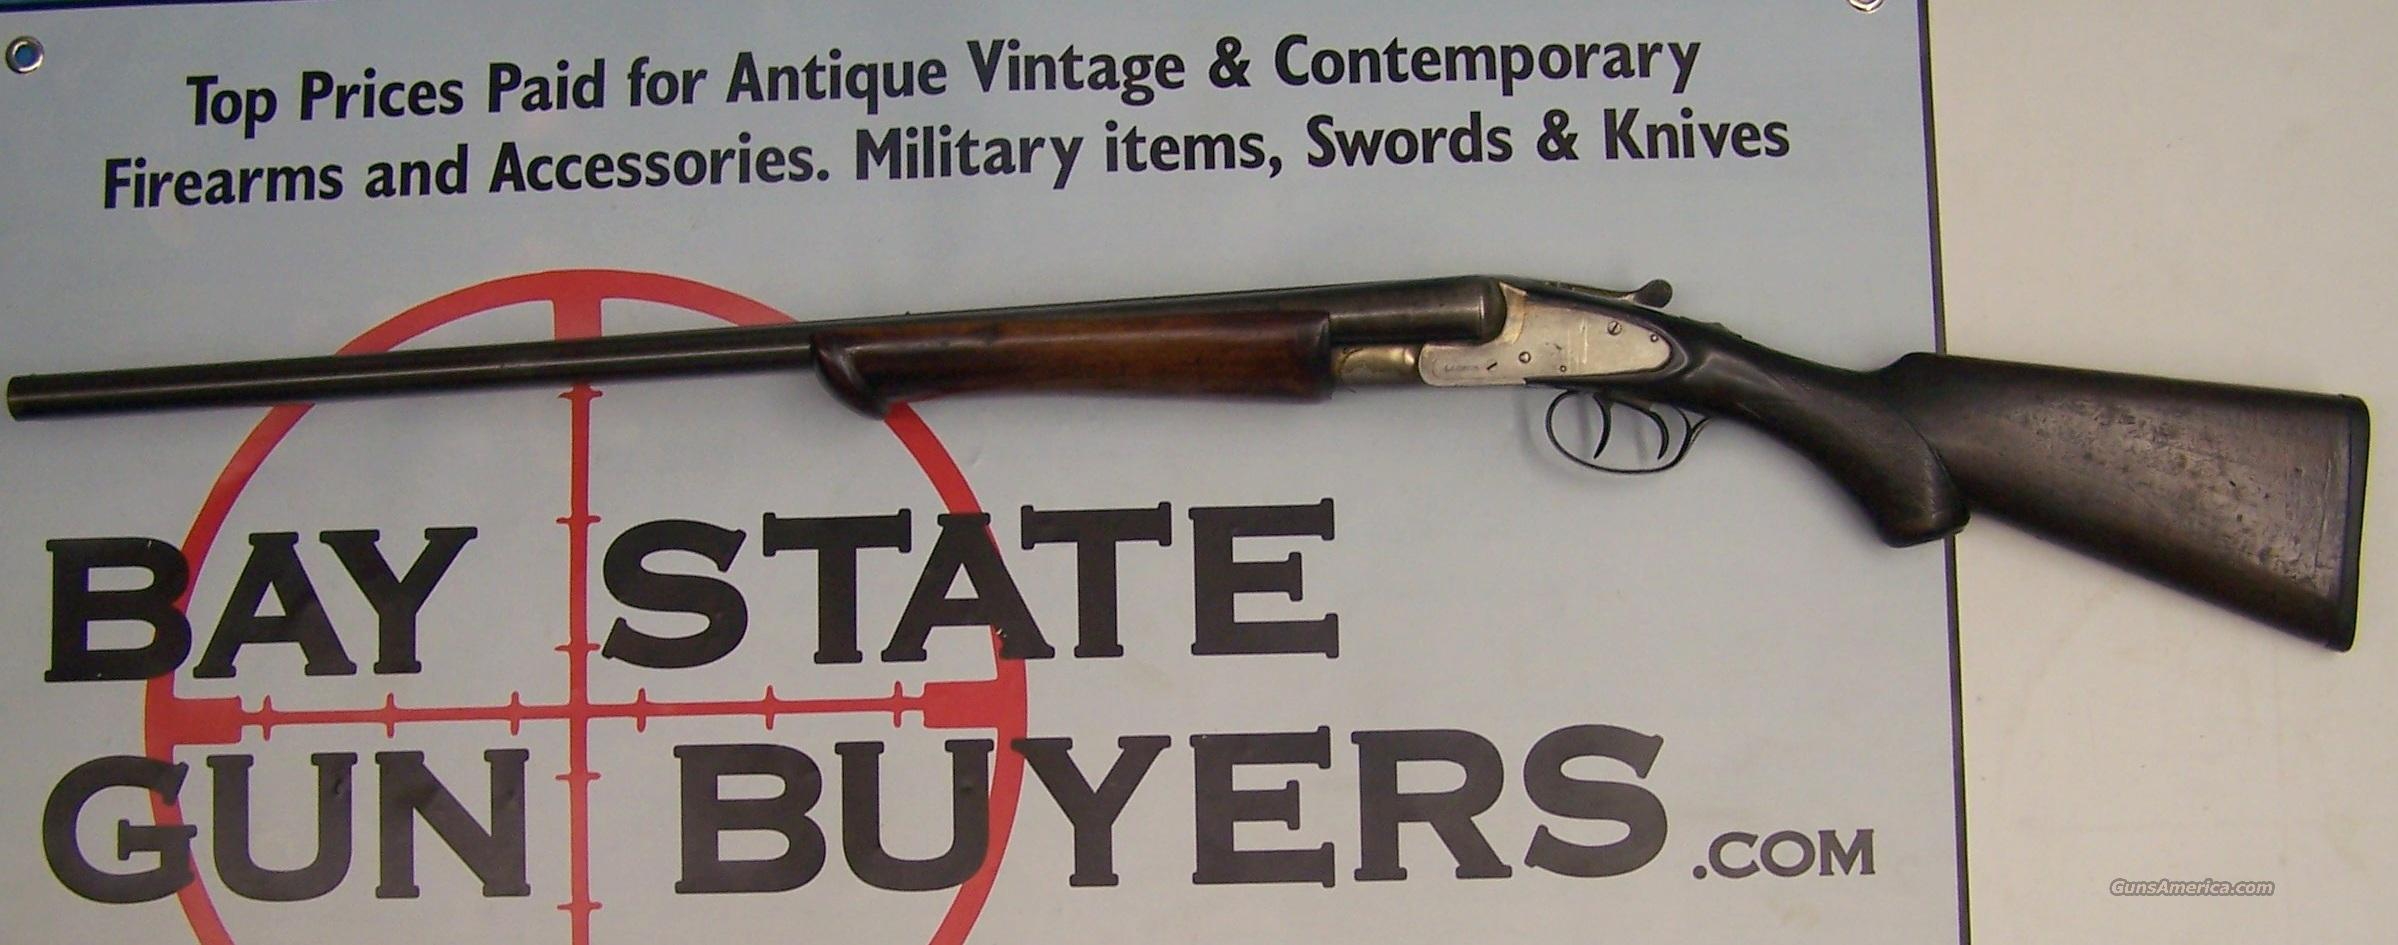 L.C. Smith IDEAL GRADE Double Barrel Shotgun 12 gauge SCARCE DESIGN 1916 C&R, FFL  Guns > Shotguns > L.C. Smith Shotguns